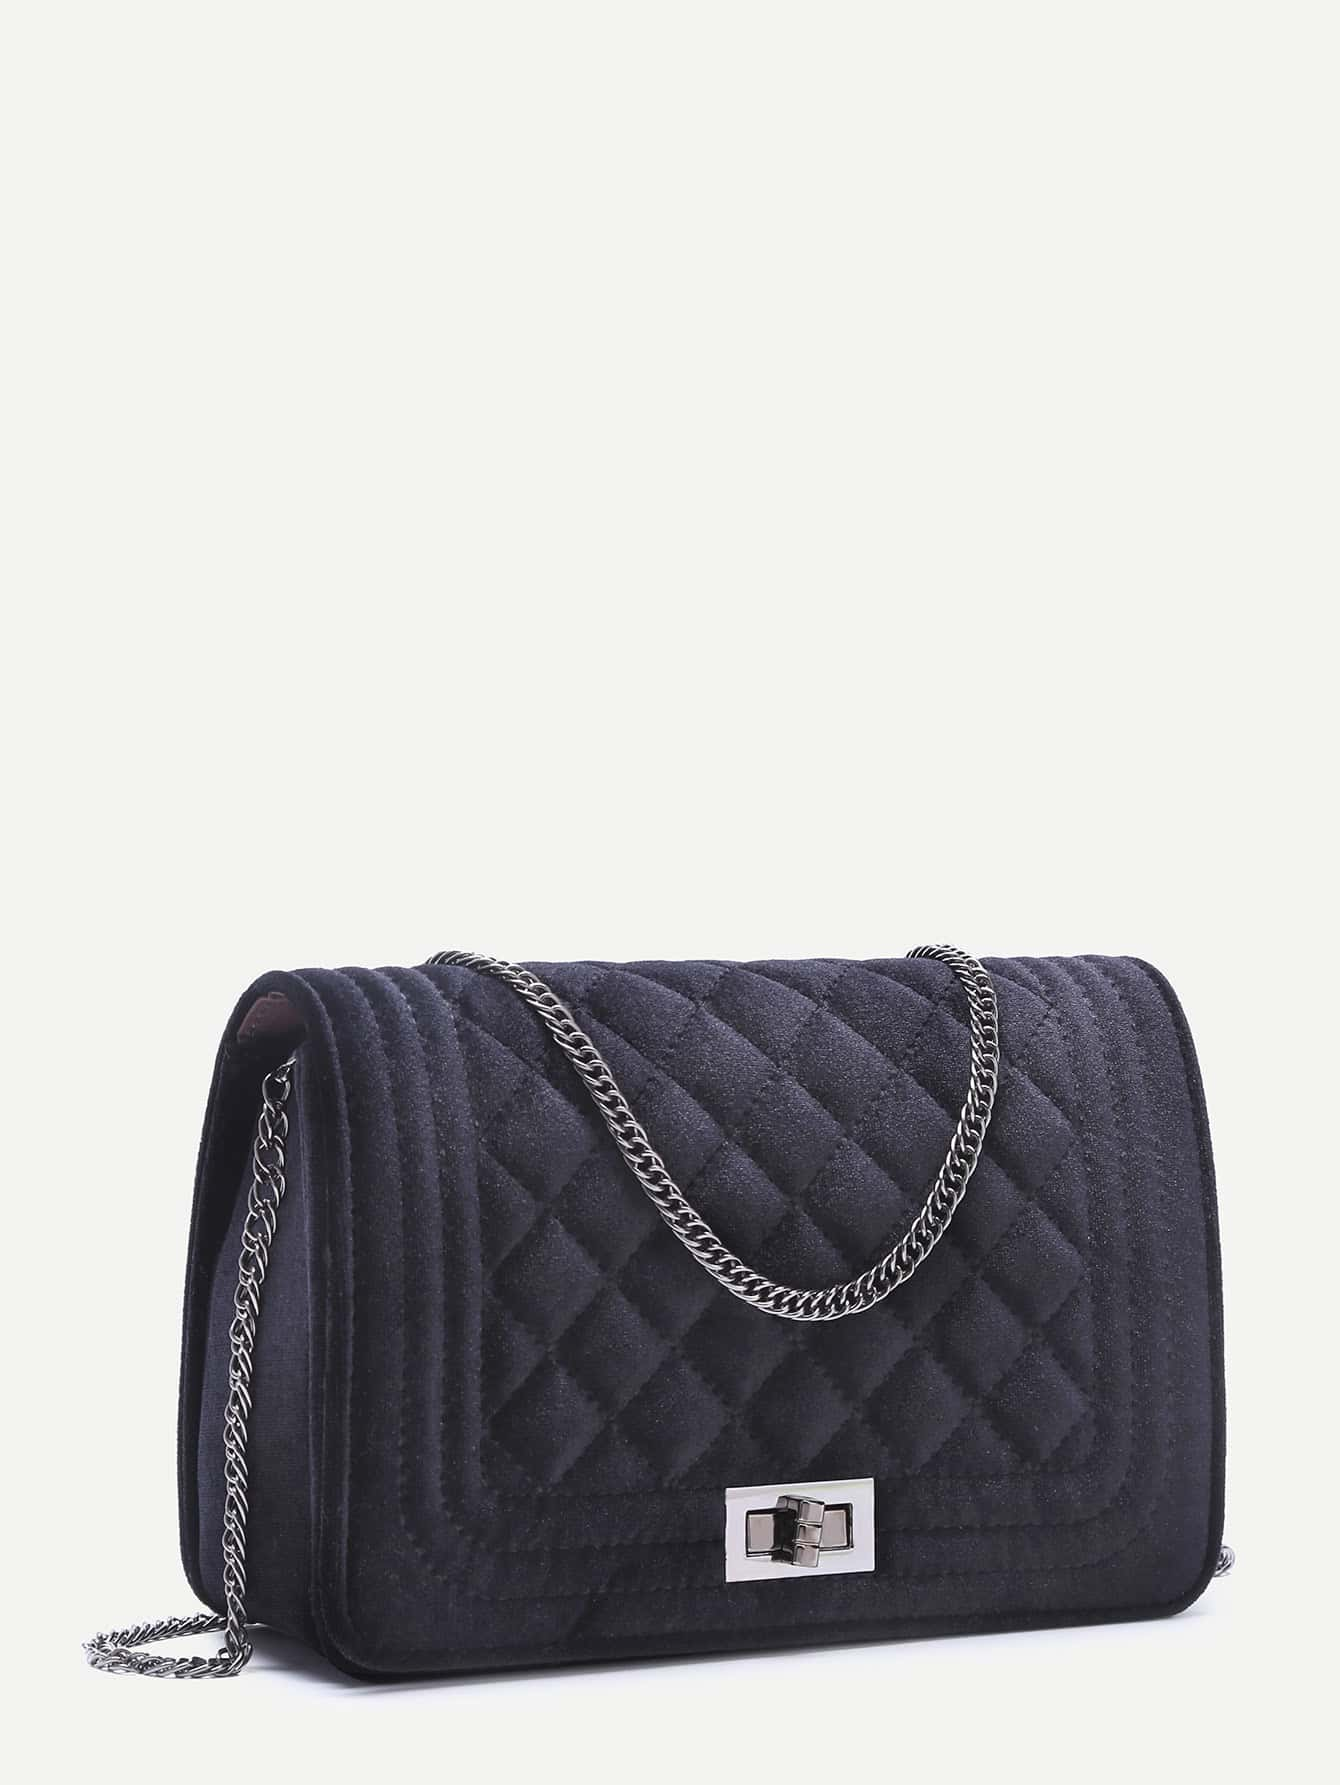 688fad8ec96f Quilted Flap Bag With Chain Uk | Stanford Center for Opportunity ...